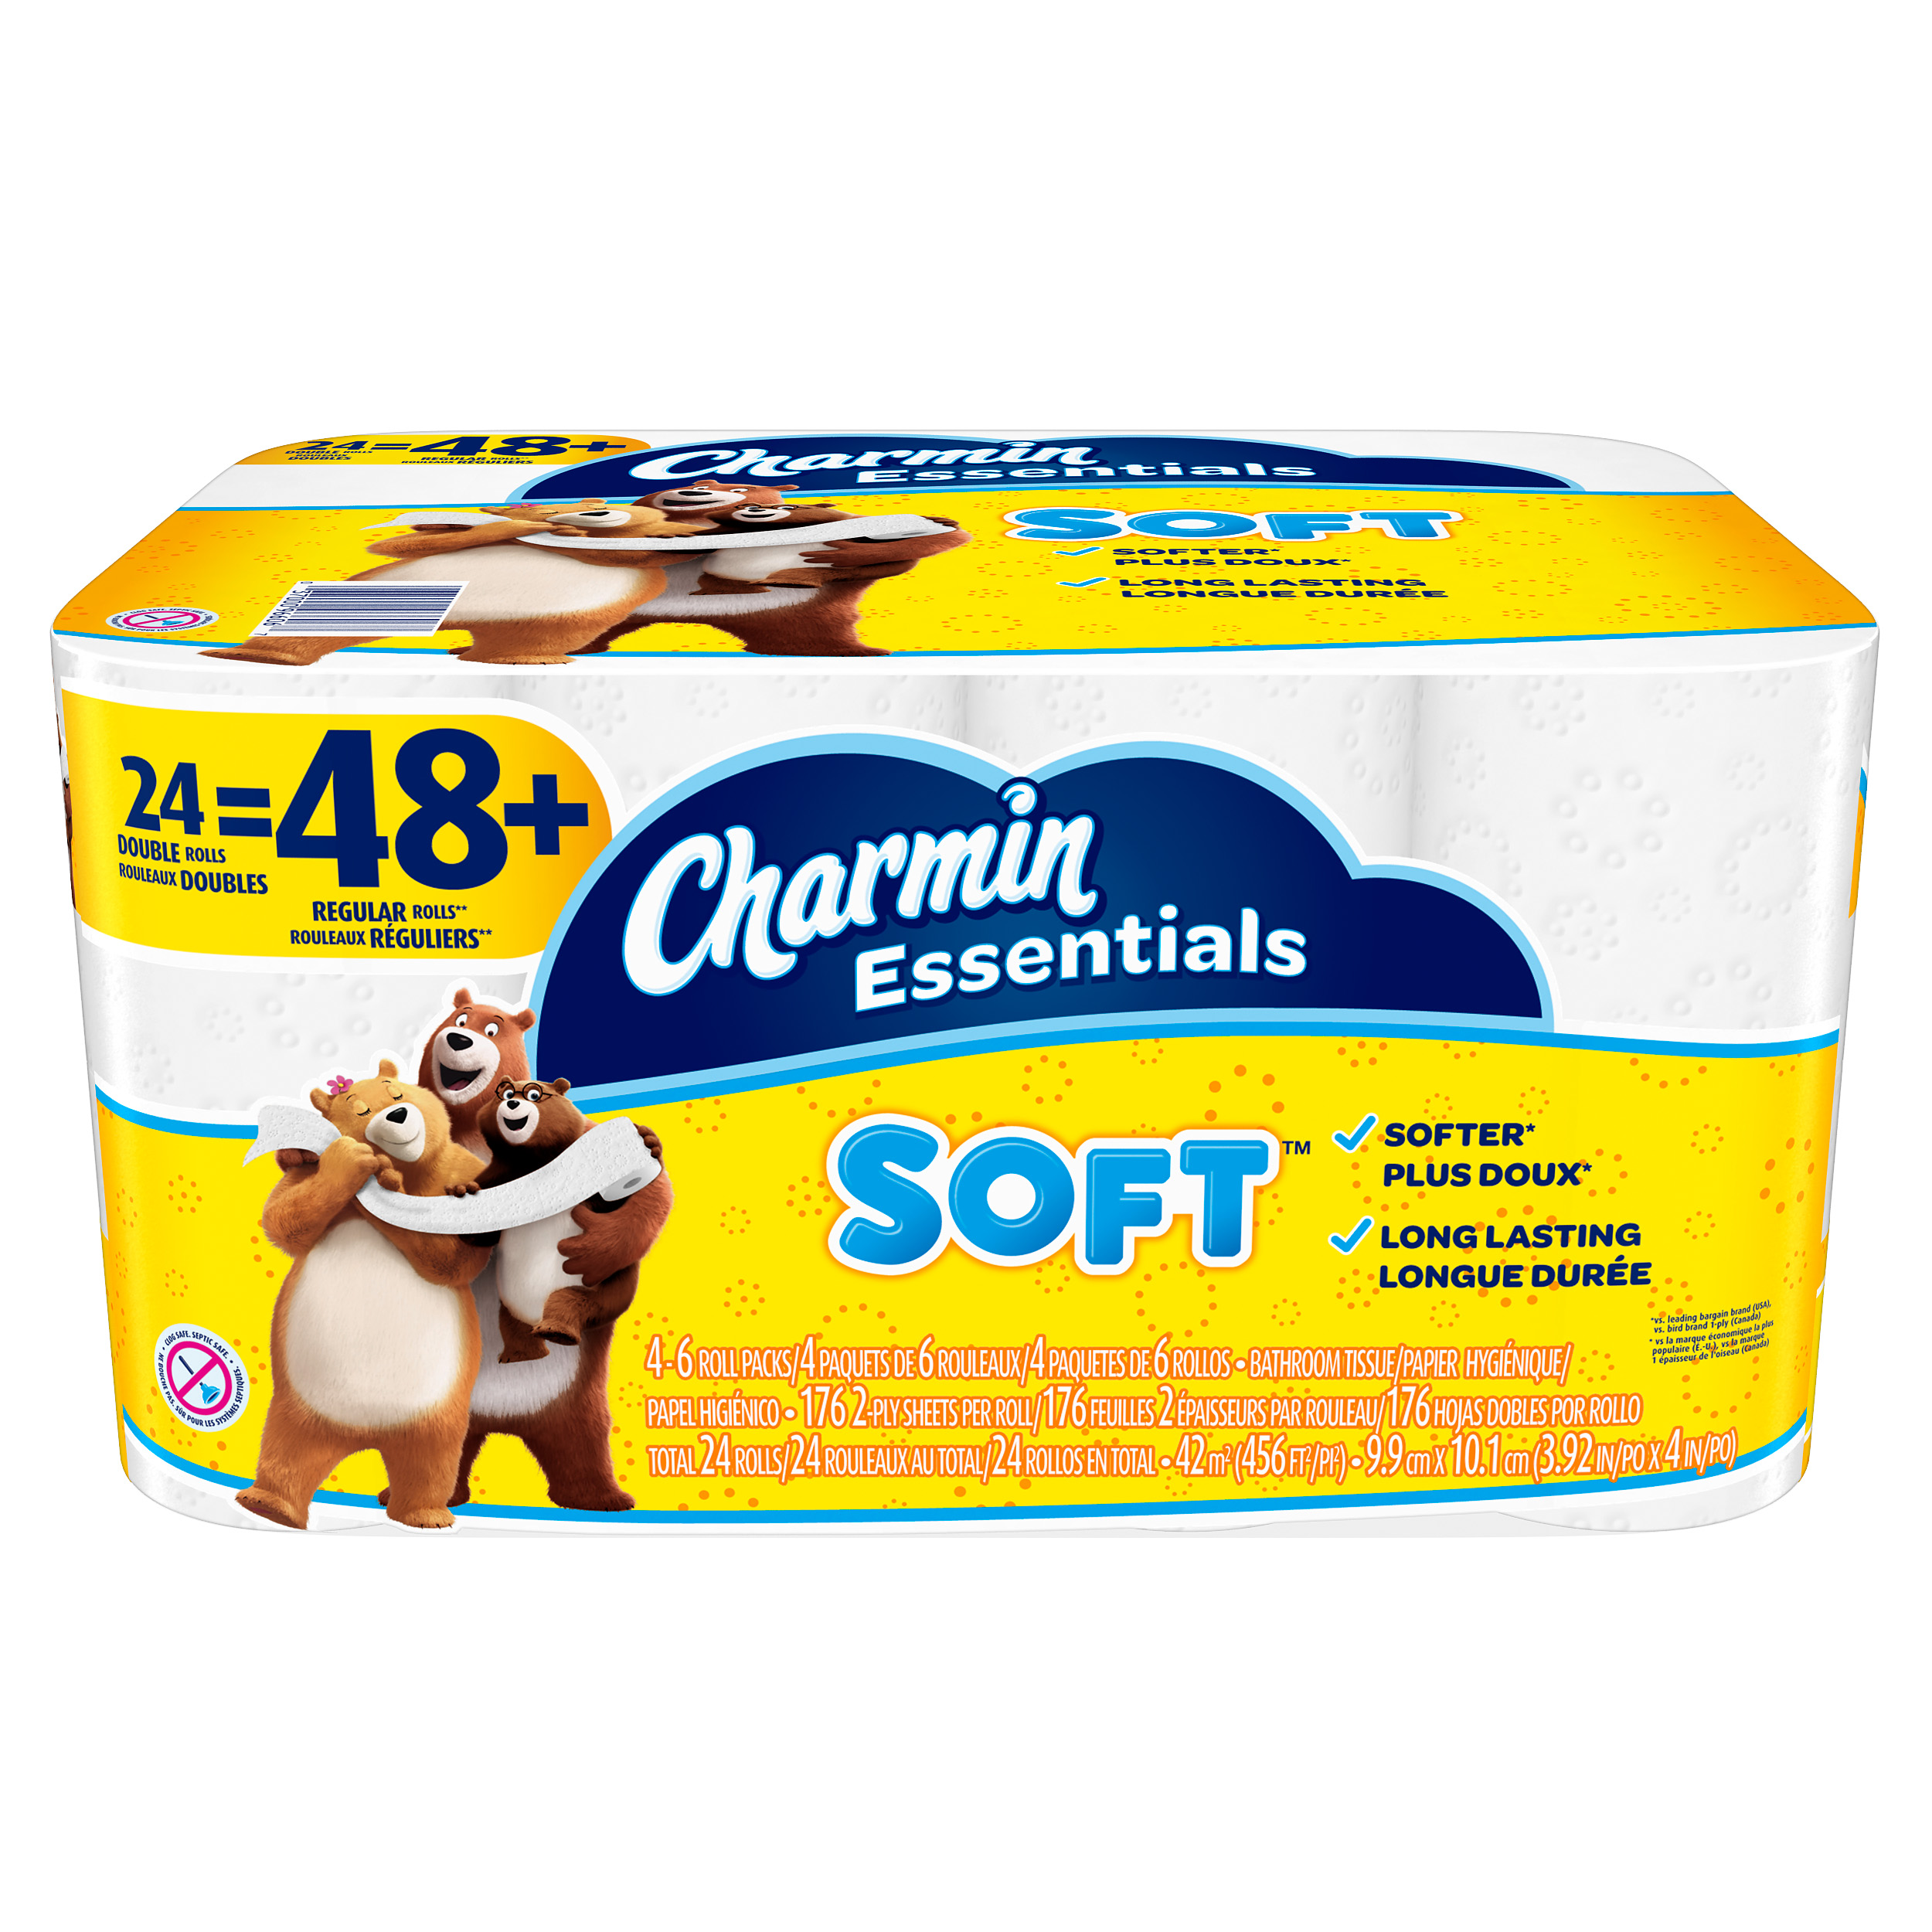 Charmin Essentials Toilet Paper, Soft, 24 Double Rolls by Charmin